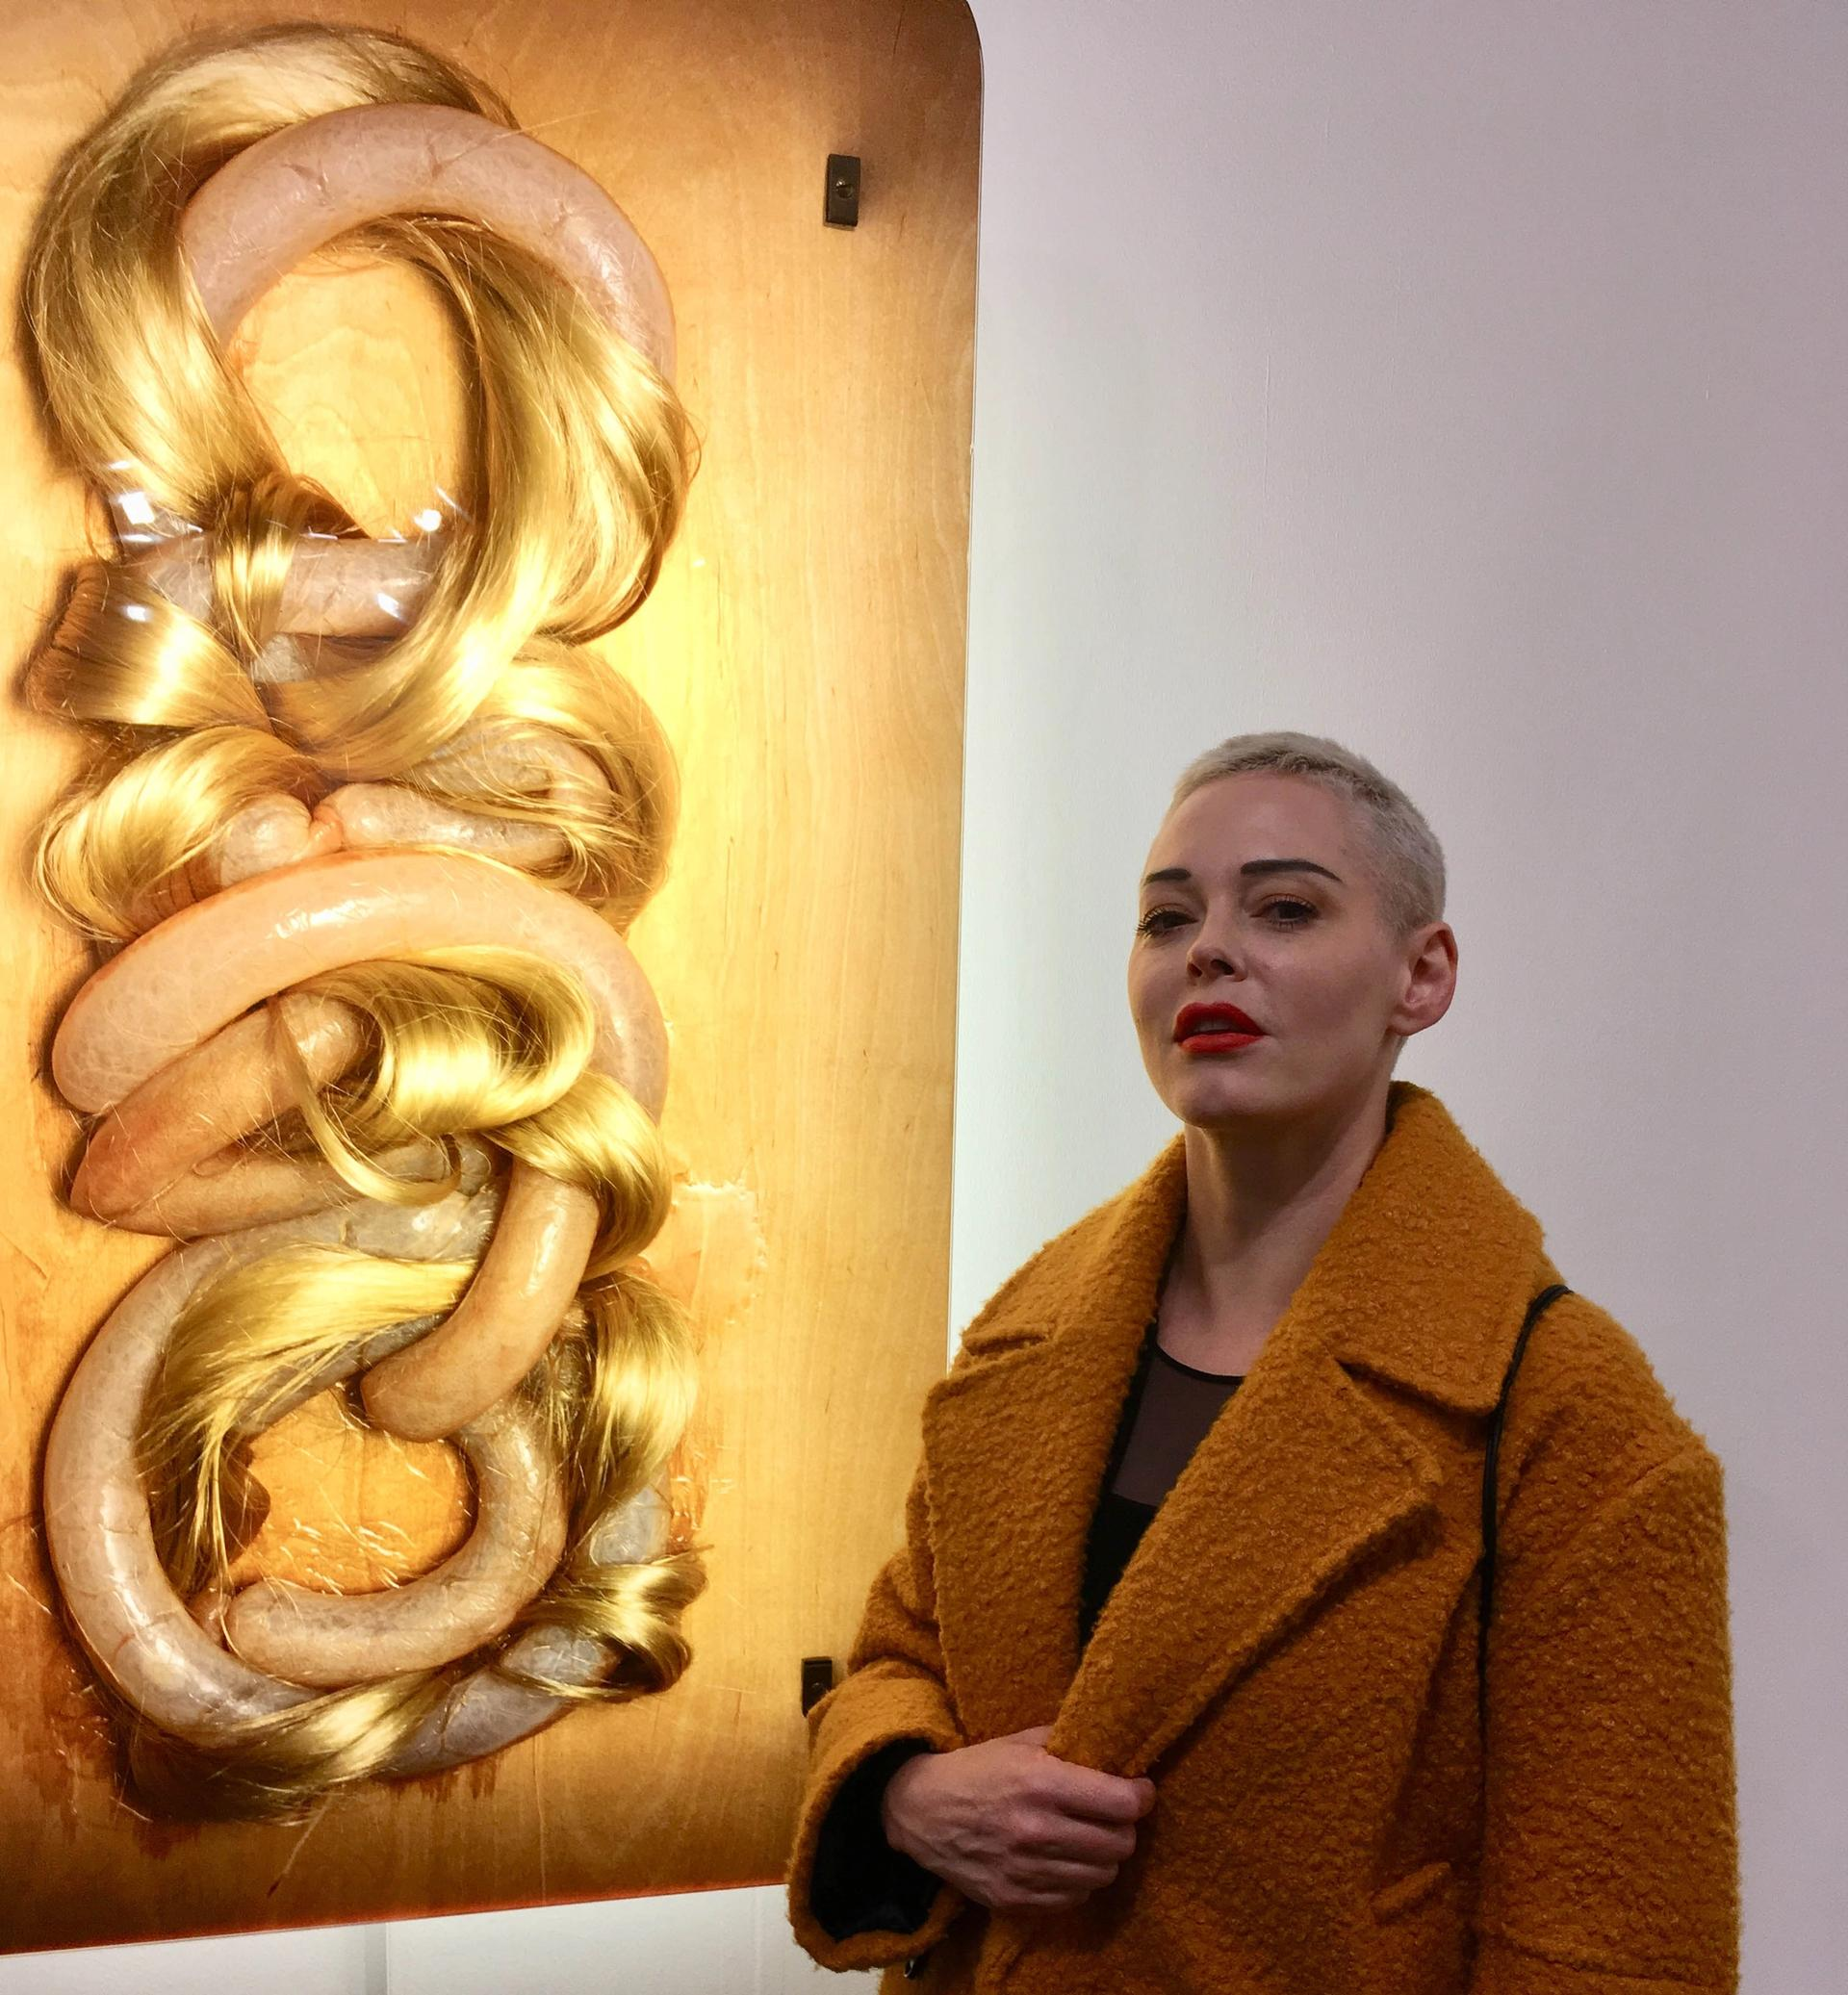 """Rose McGowan, the actress and pioneer of the #metoo movement, visited the Social Work section at Frieze London yesterday on the first anniversary of #MeToo. She described the section as: """"incredibly powerful, moving and profound."""" Adding: """"To see this display in such a beautiful way means the world to me especially in the world that we are now living in."""" © Louisa Buck"""